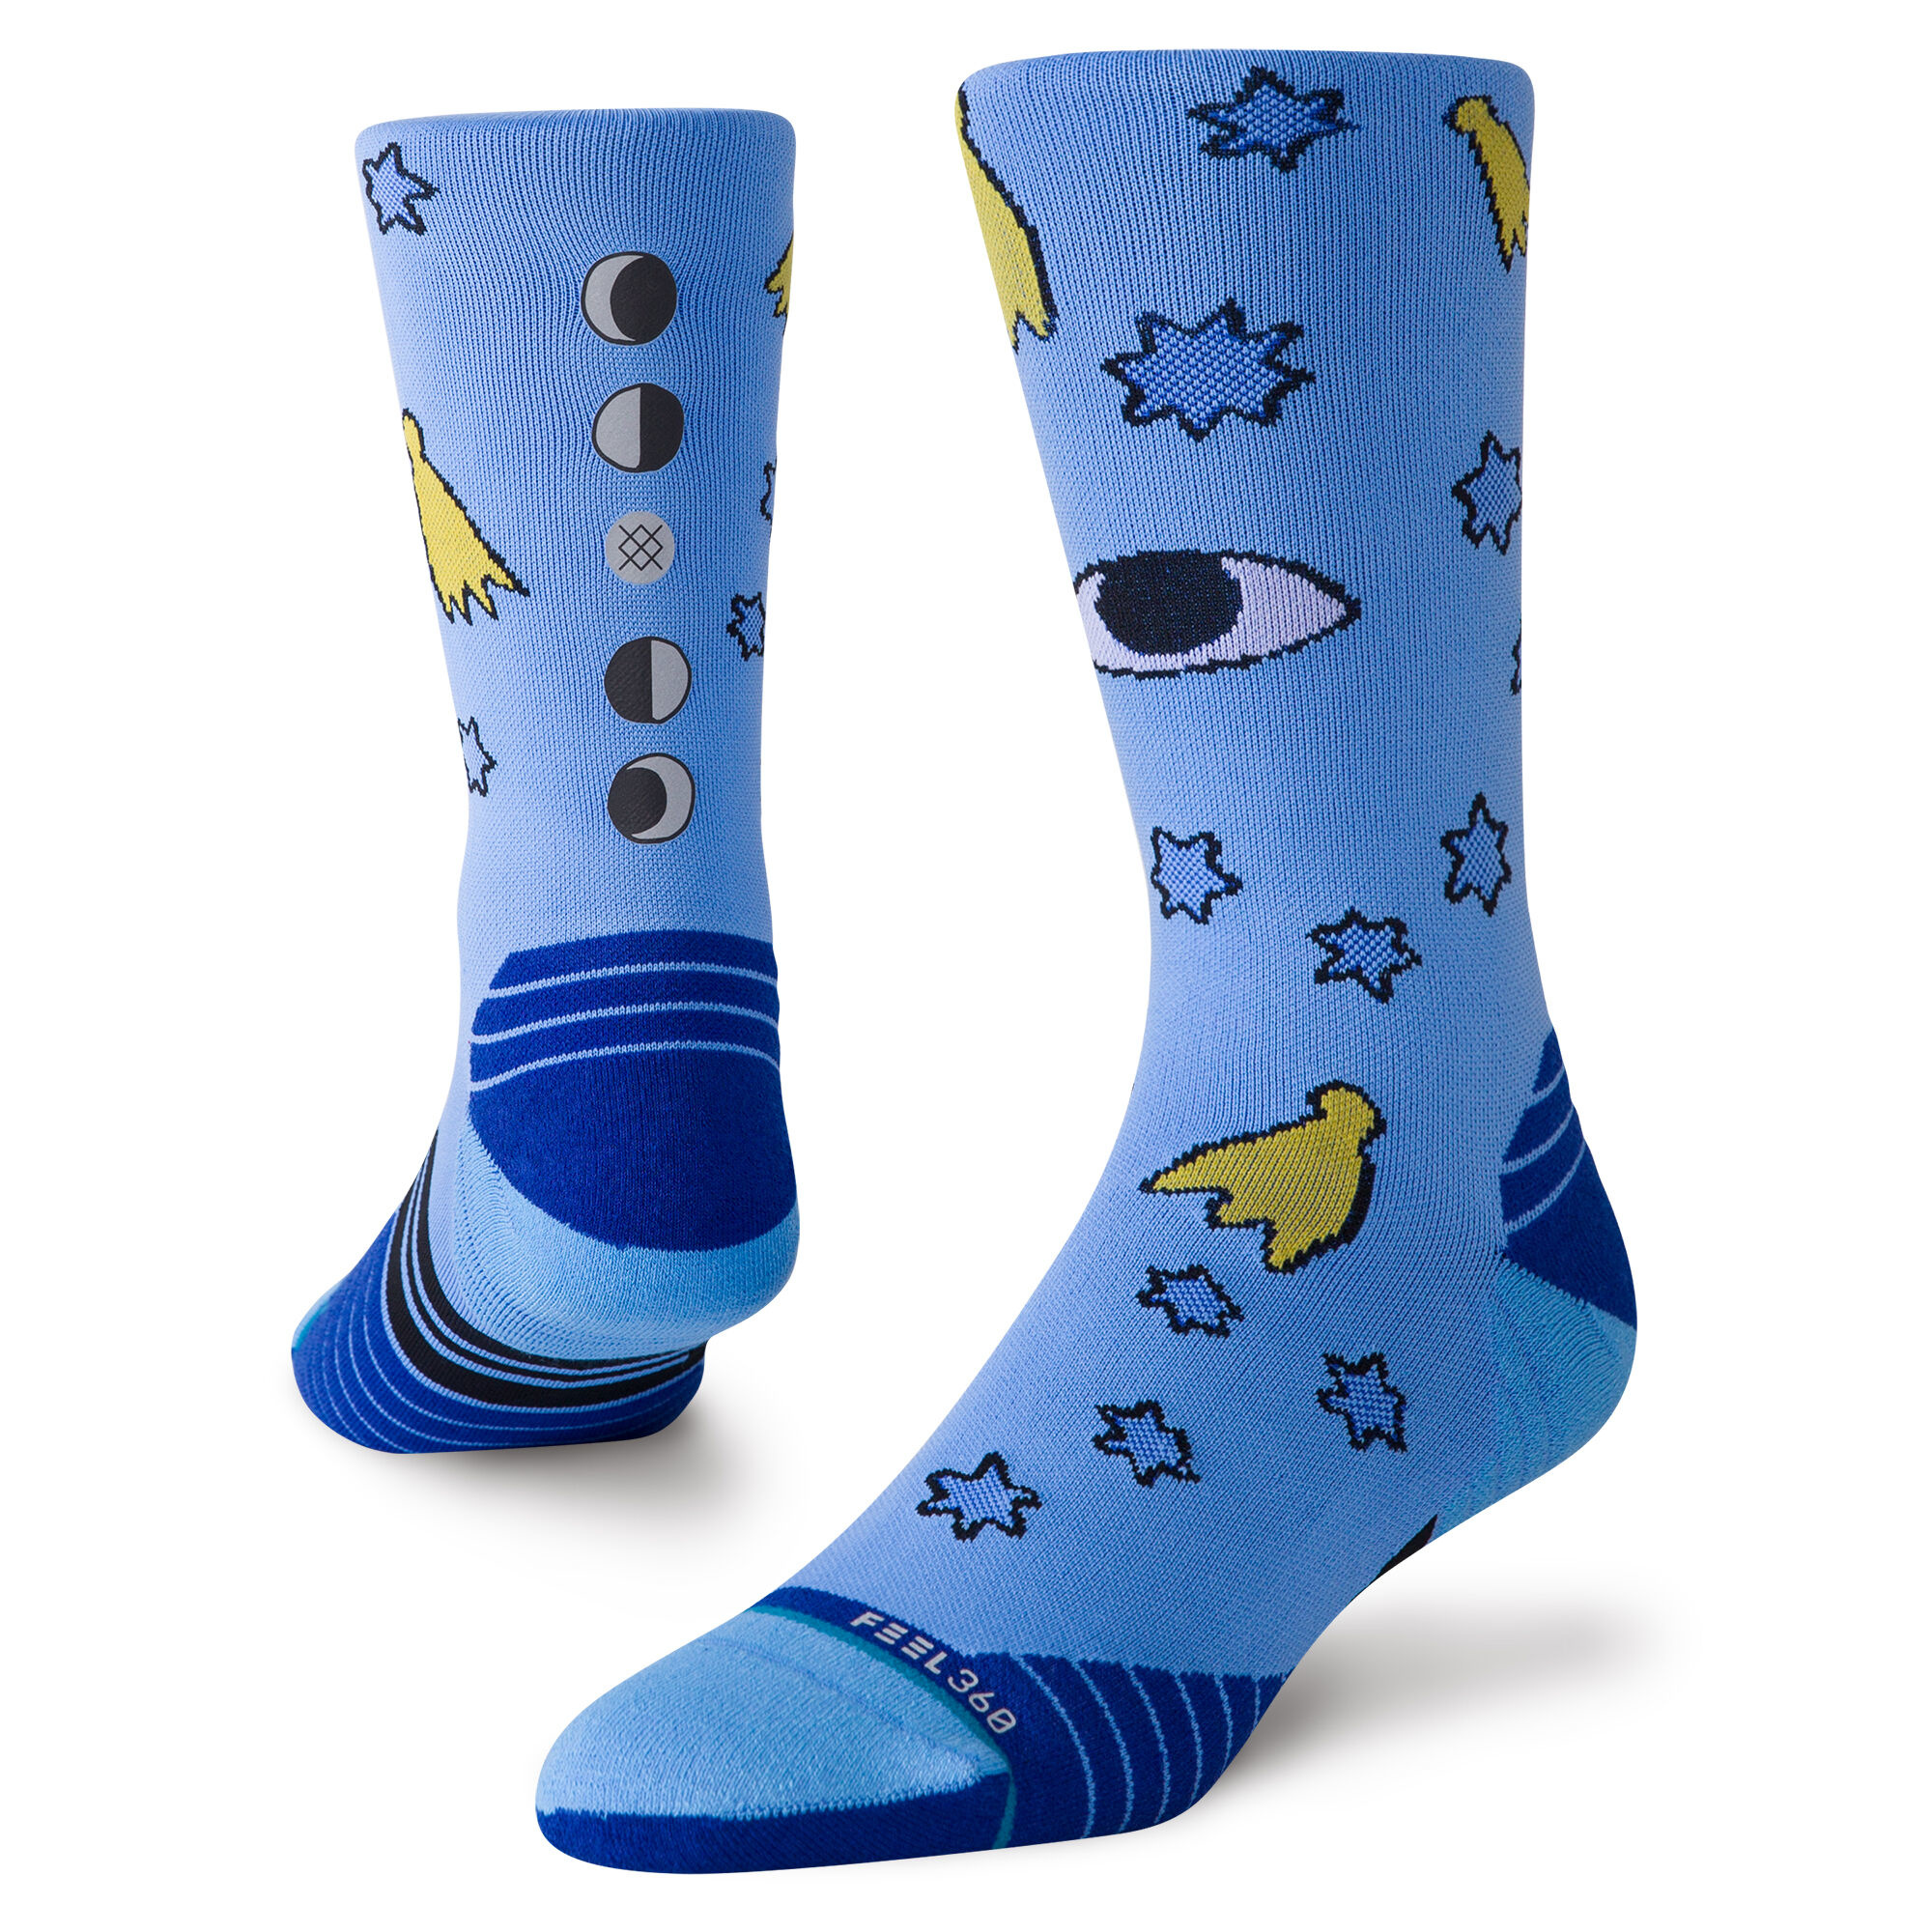 L New Stance Cavolo Moons Socks